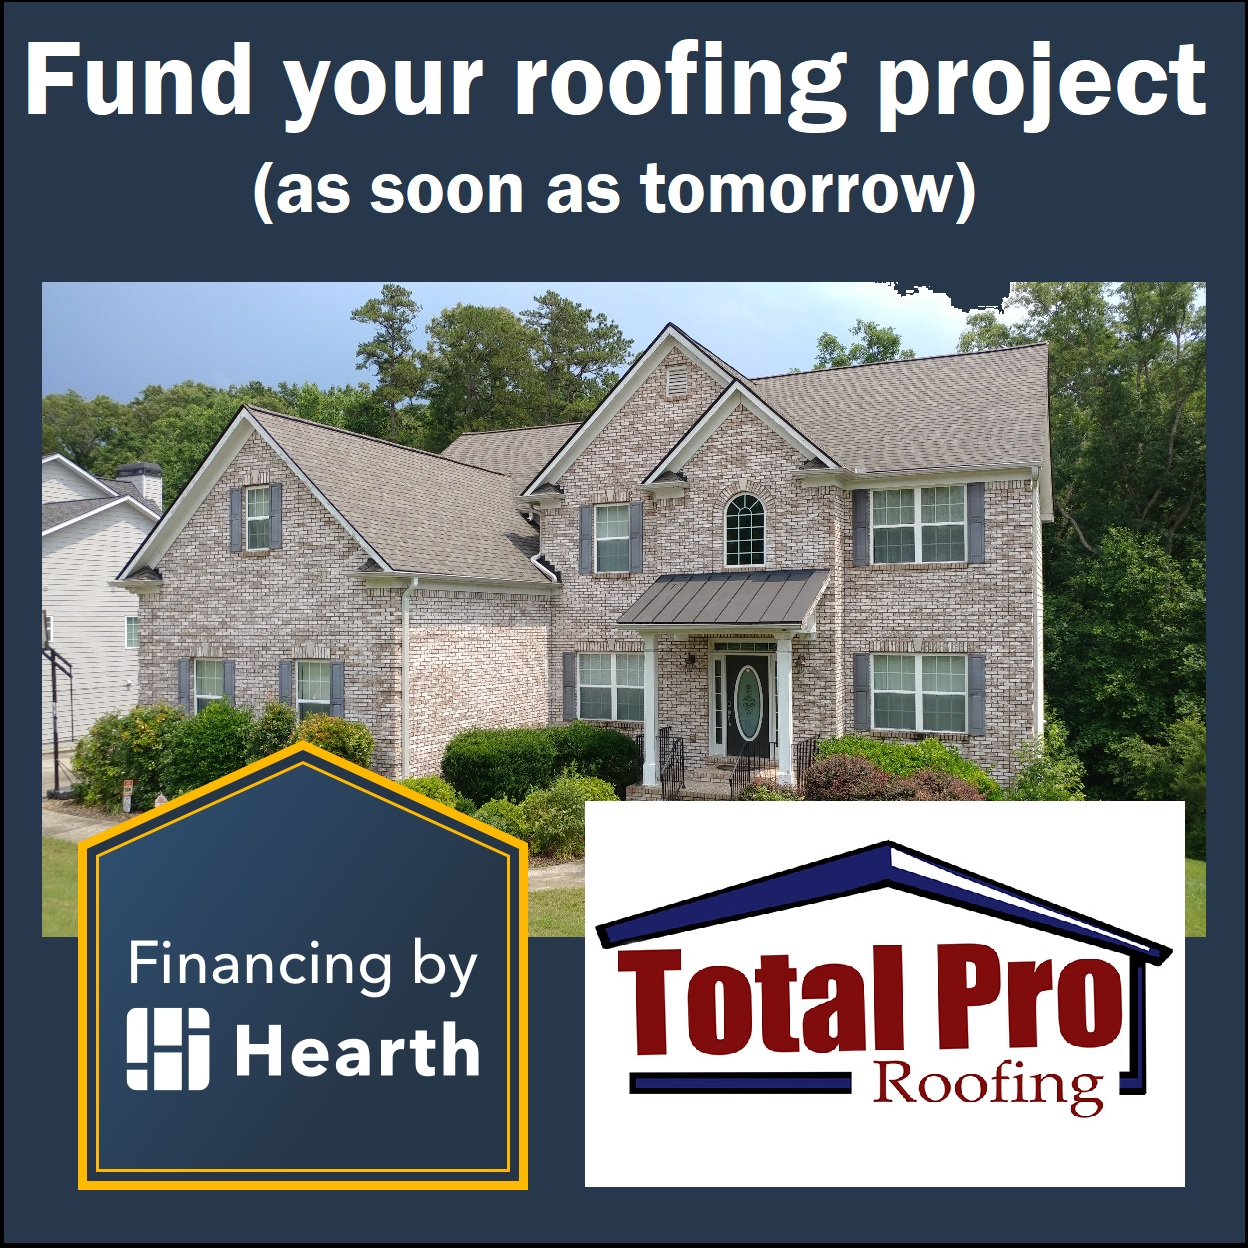 TOTAL PRO ROOFING FINANCING